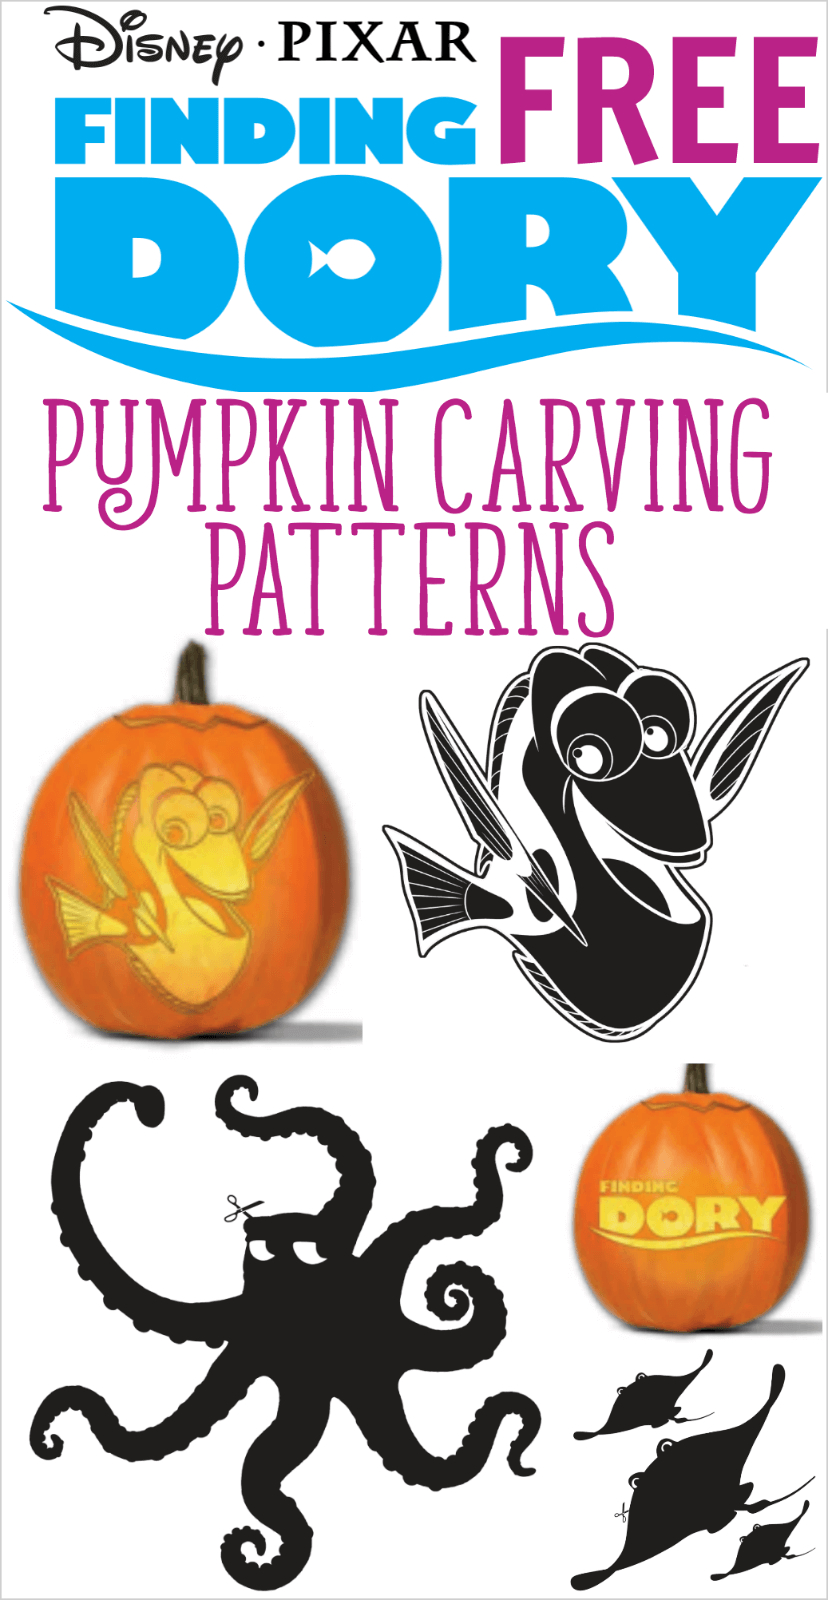 Free Finding Dory Pumpkin Carving Patterns To Print! | All Things - Free Printable Toy Story Pumpkin Carving Patterns